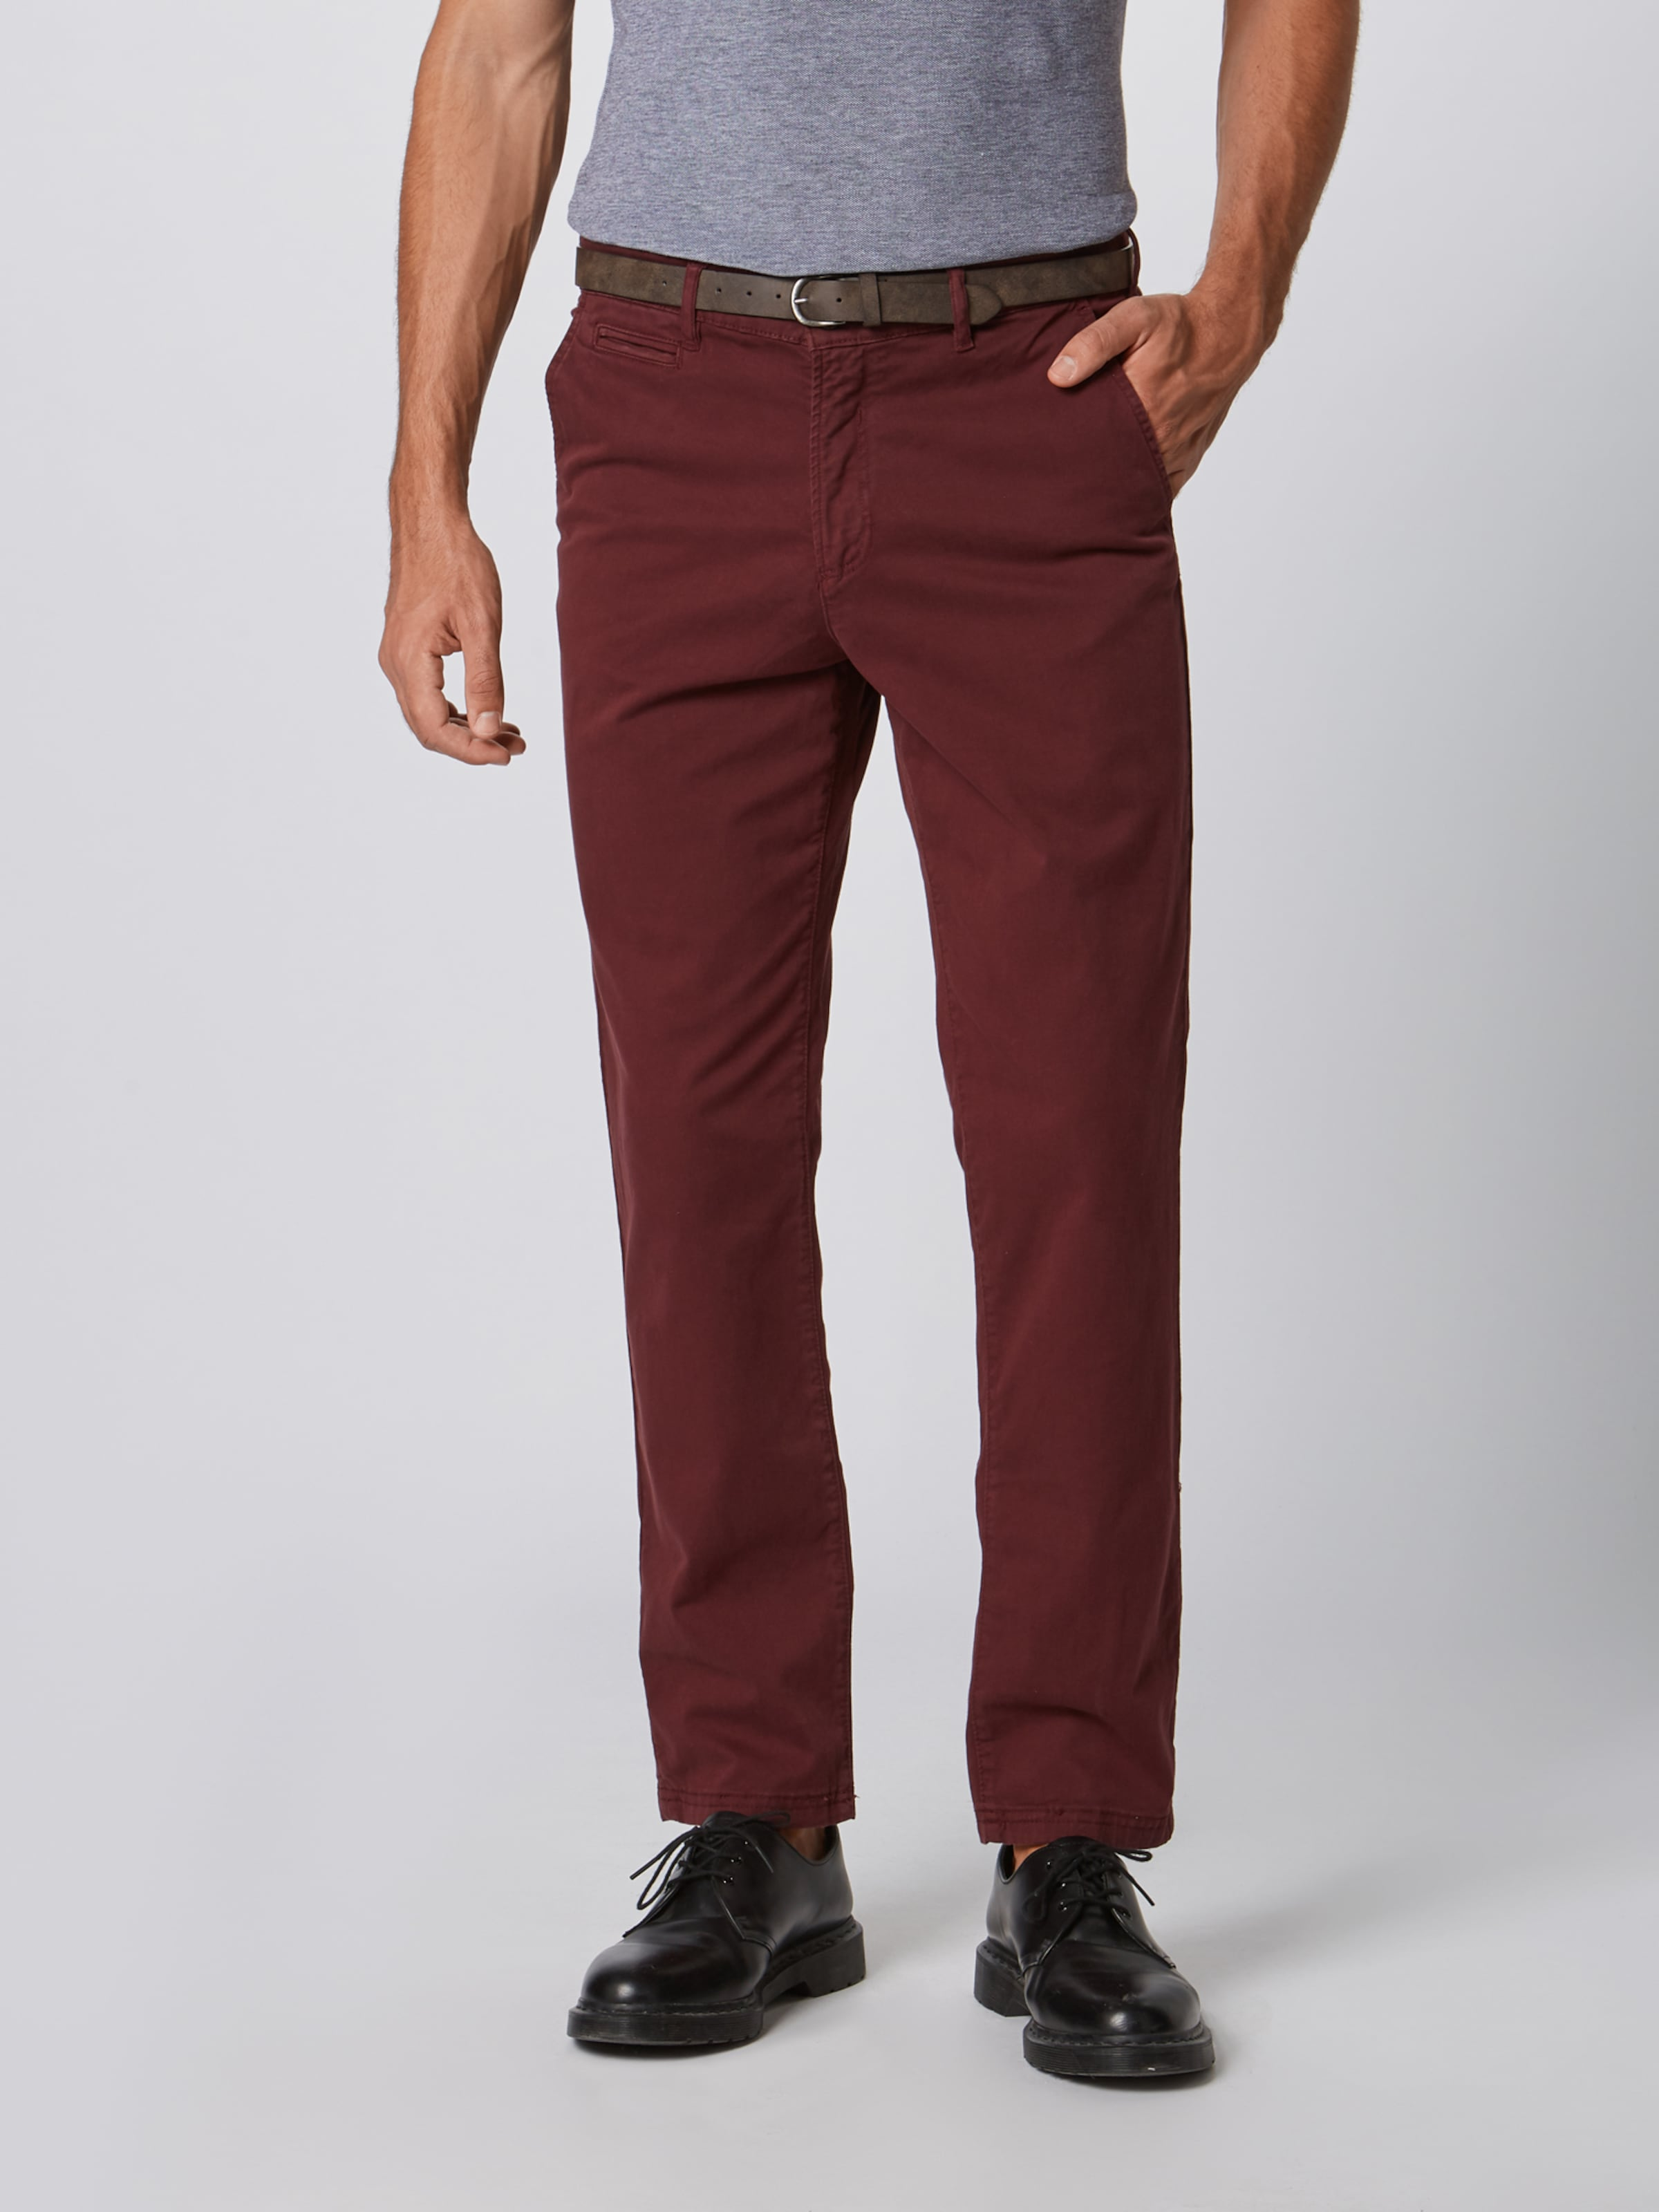 Jones En 'roy Pantalon Jackamp; Chino James' Bordeaux xBCrdoe